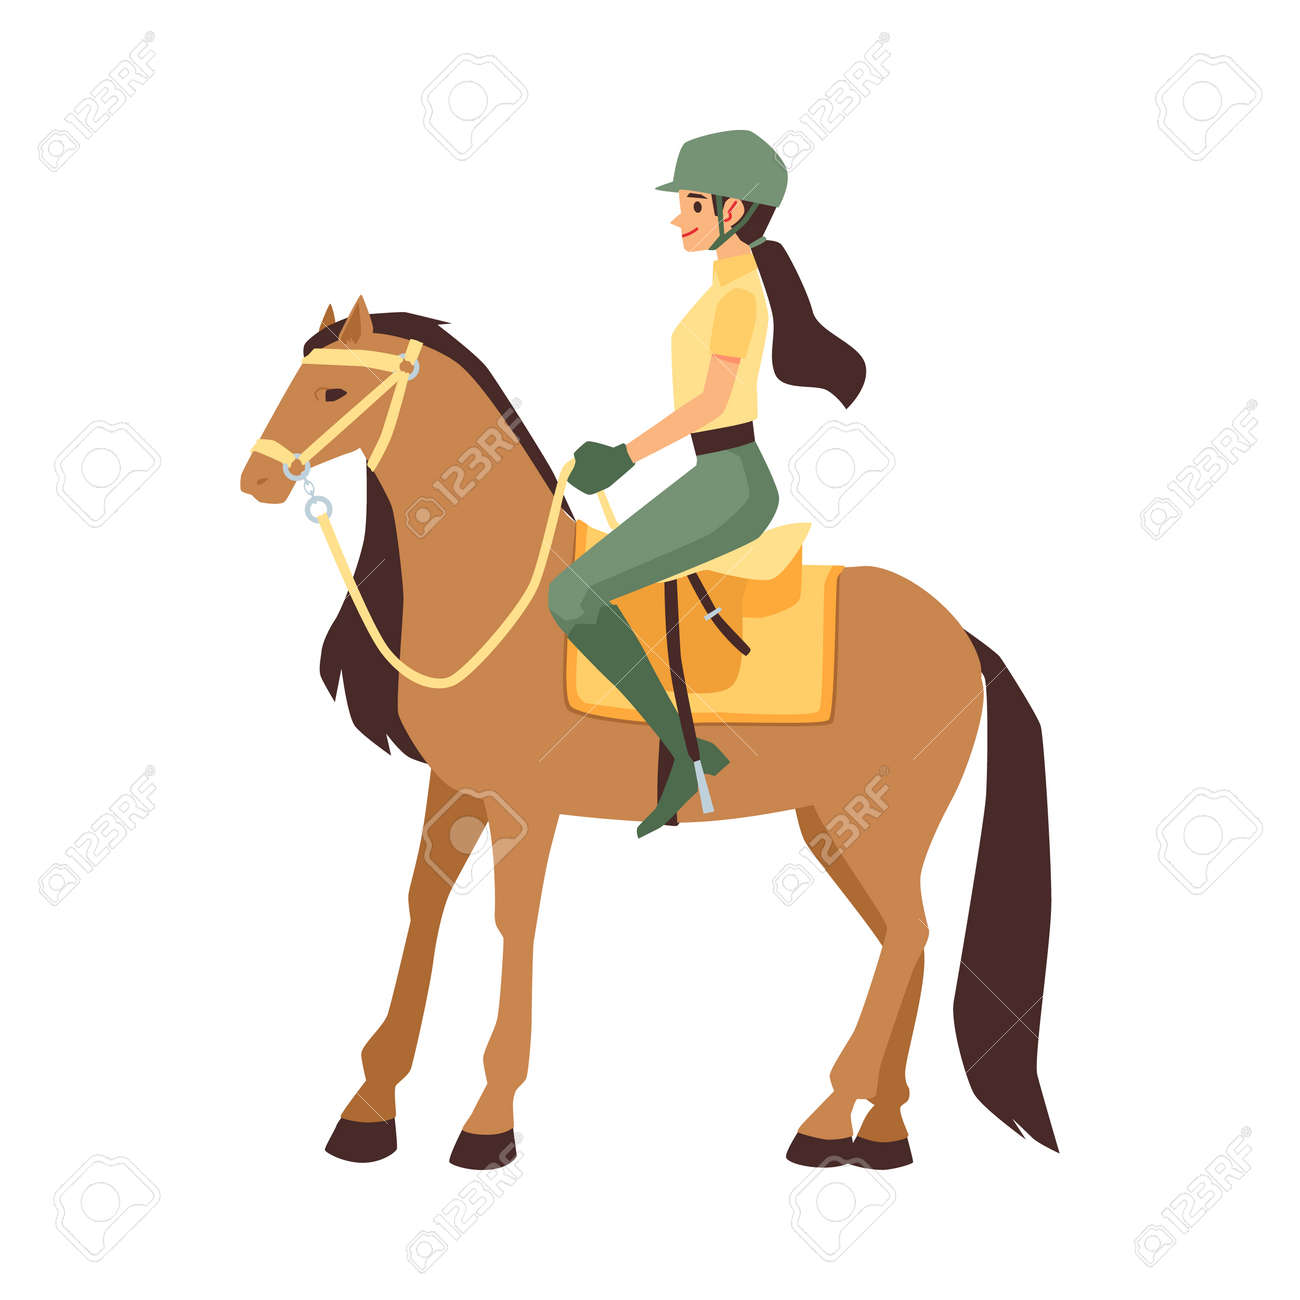 Woman jockey sitting on horseback, flat vector illustration isolated on white background. Female cartoon character of participant of equestrian competition. - 157474725